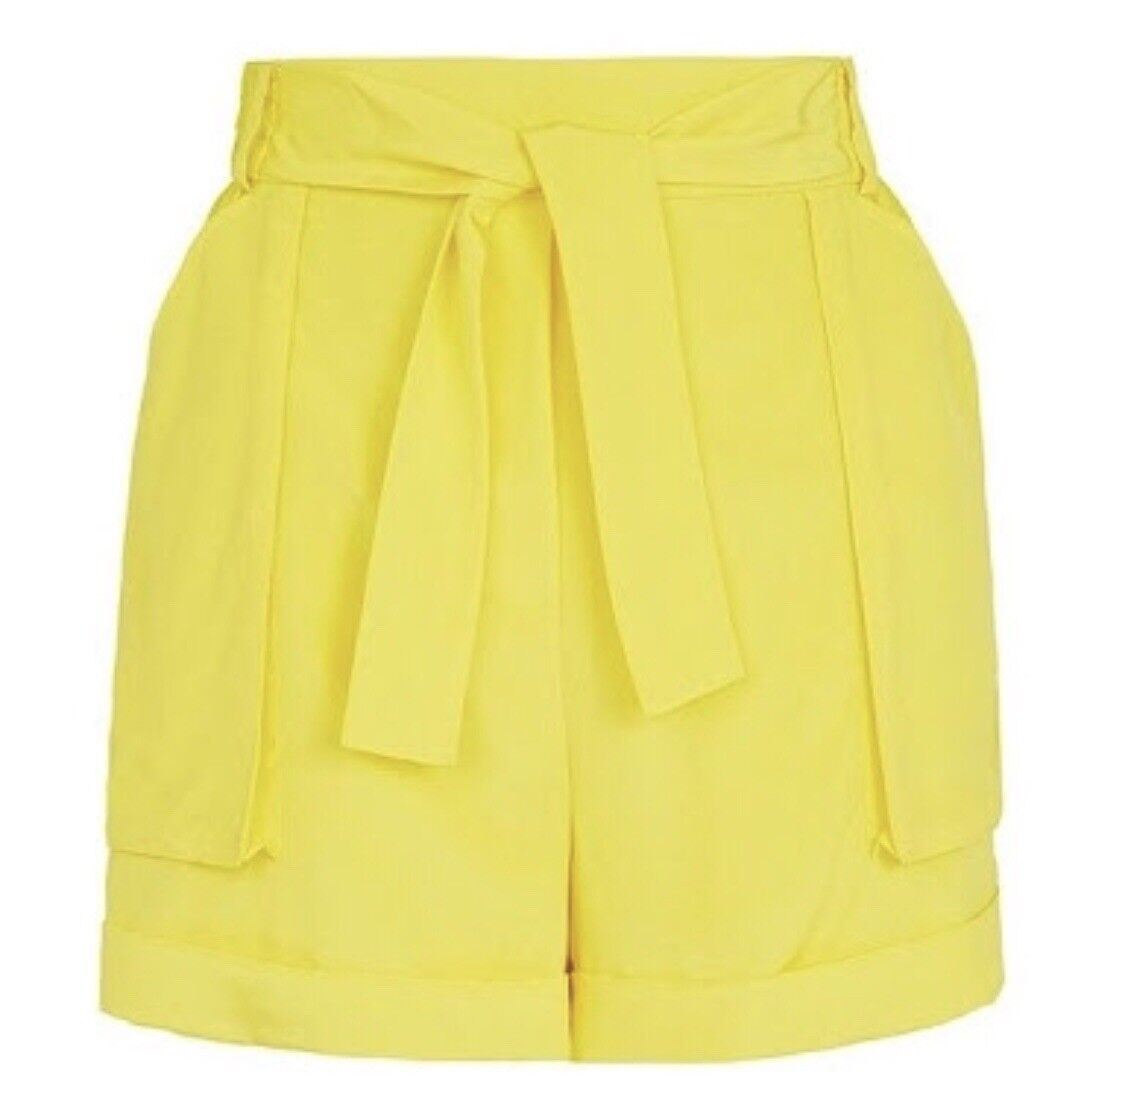 Sass and Bide The Airs Force Silk Shorts Size 14 Yellow